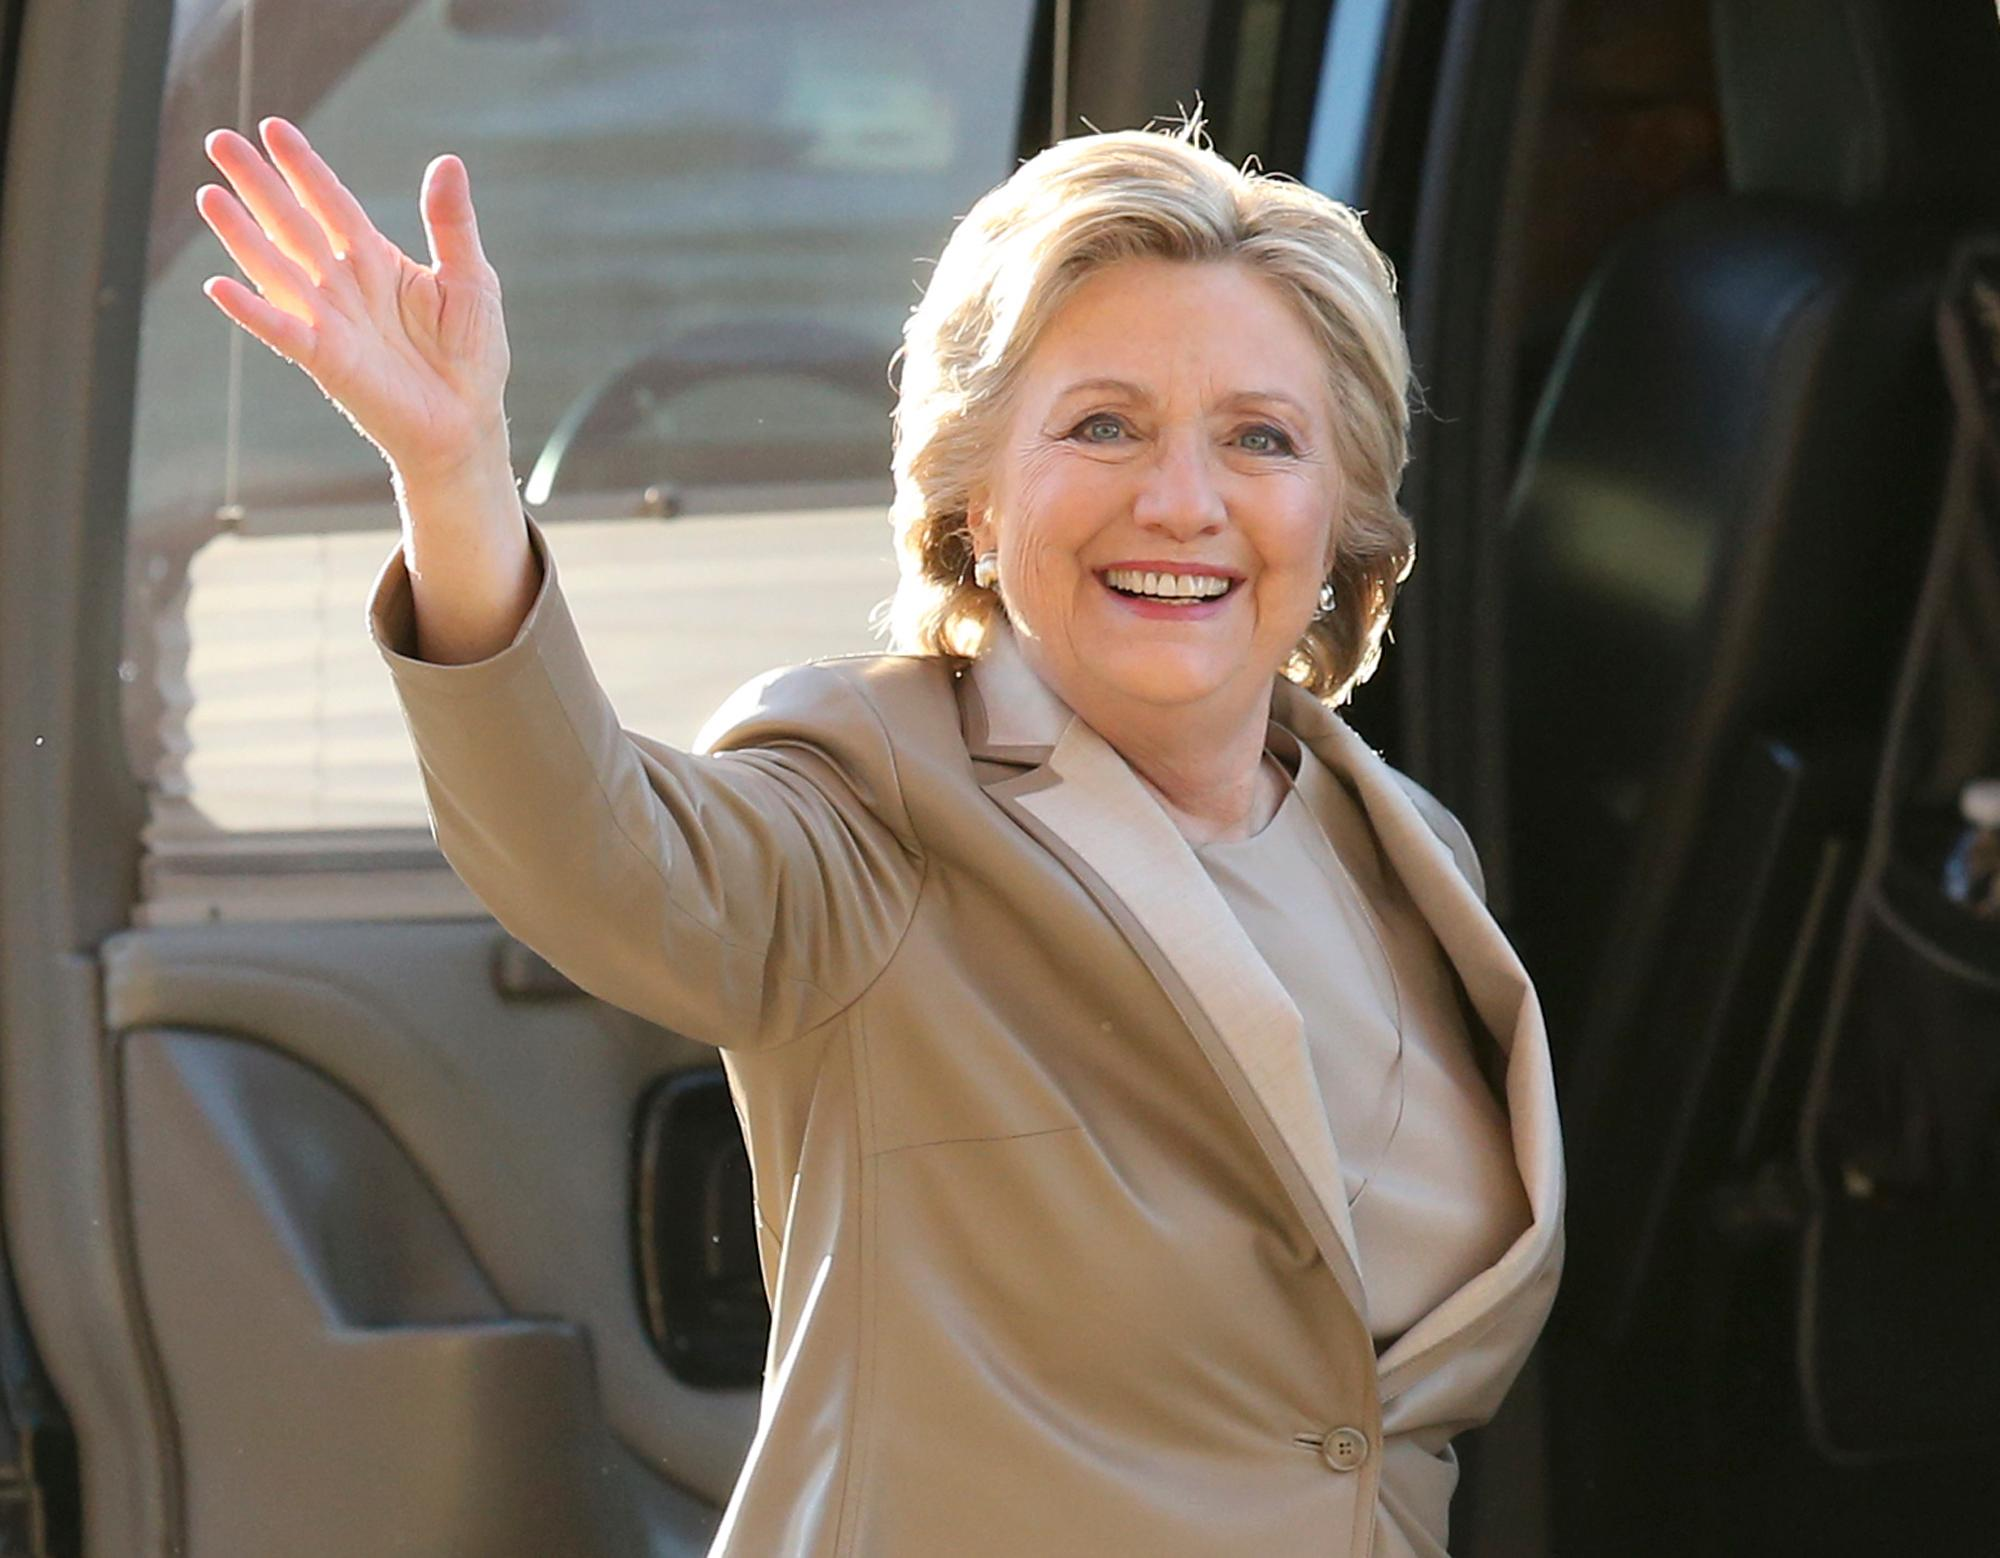 FILE - In this Nov. 8, 2016 file photo, Democratic presidential candidate Hillary Clinton waves as she arrives to vote at her polling place in Chappaqua, N.Y.{ } (AP Photo/Seth Wenig, File)